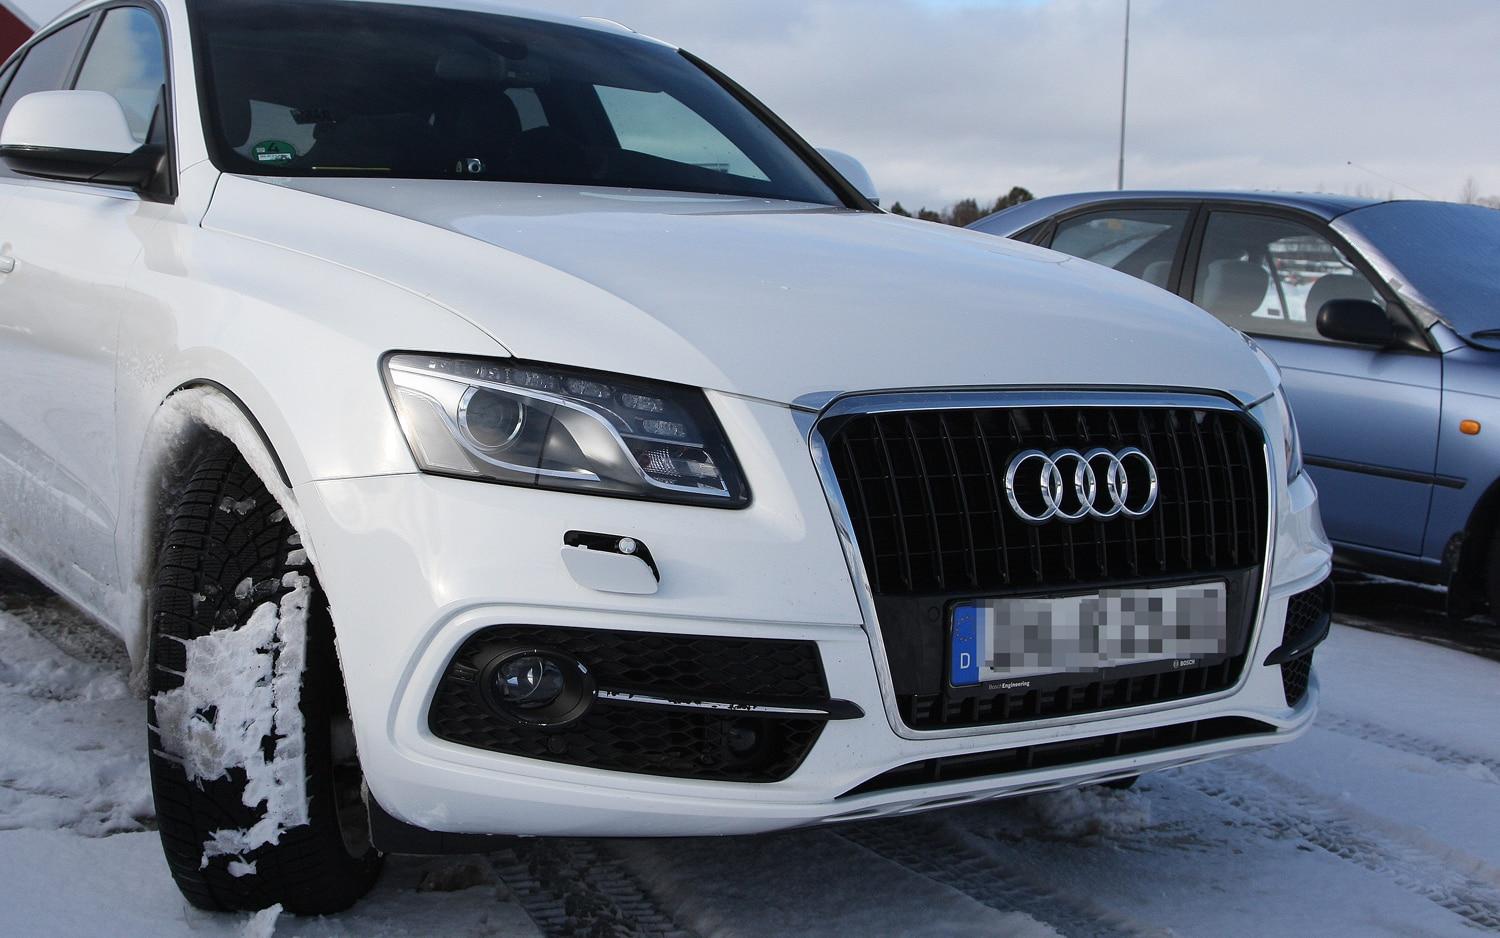 Caught Refreshed Audi Q5 Shows Off Revised Grille